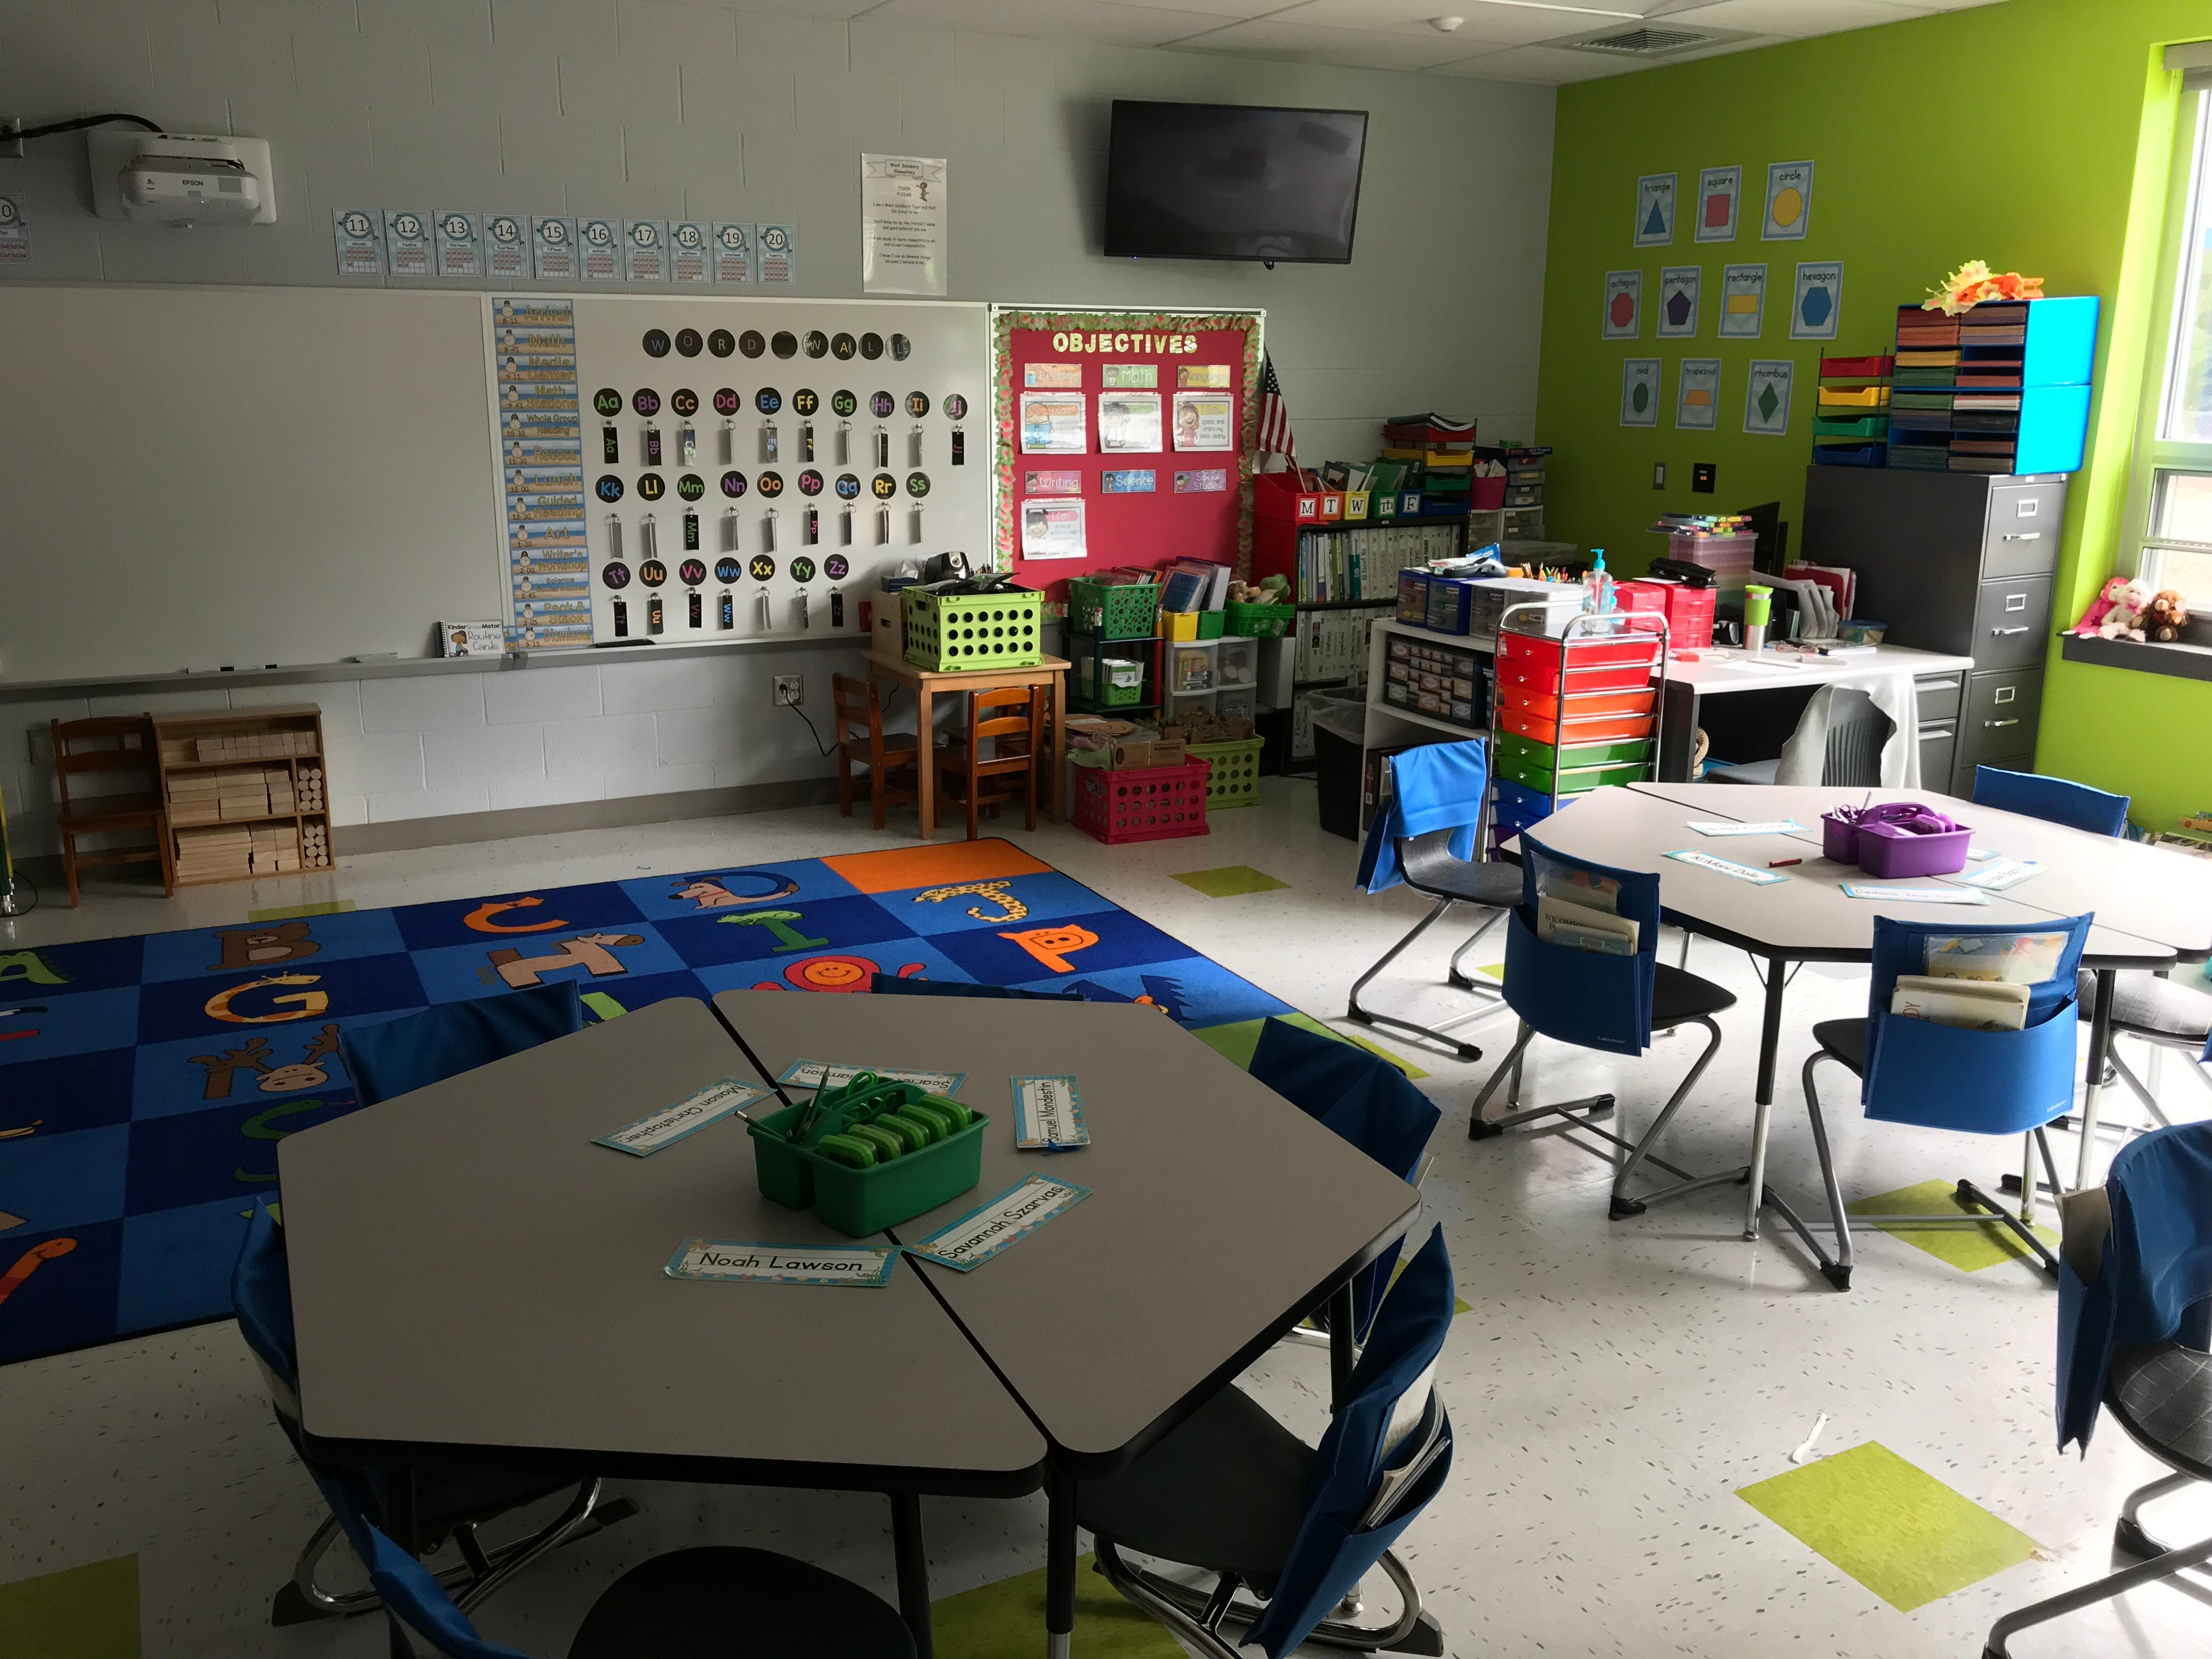 A classroom inside the new West Salisbury Elementary was on display during a rededication ceremony at the school on Sept. 27, 2018.